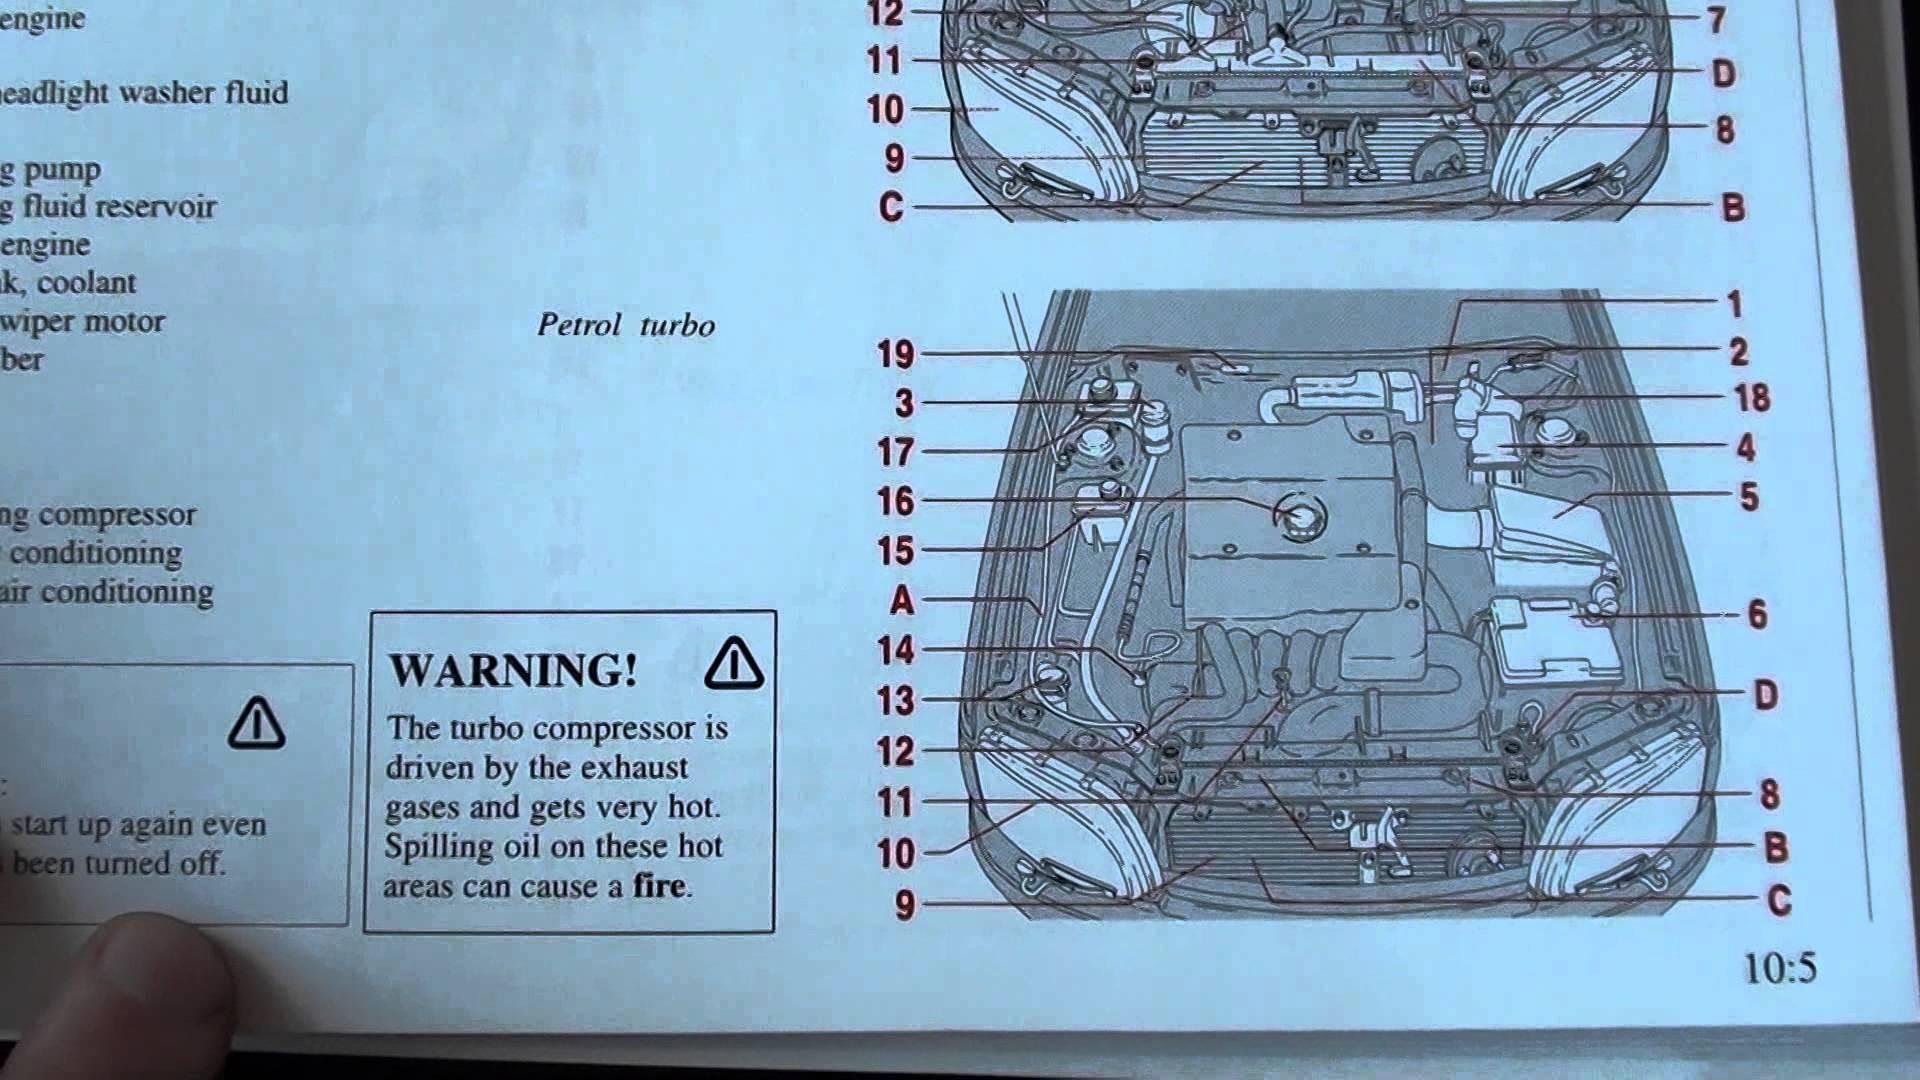 2005 toyota Tacoma Engine Diagram S40 Engine Diagram Library Wiring Diagram • Of 2005 toyota Tacoma Engine Diagram